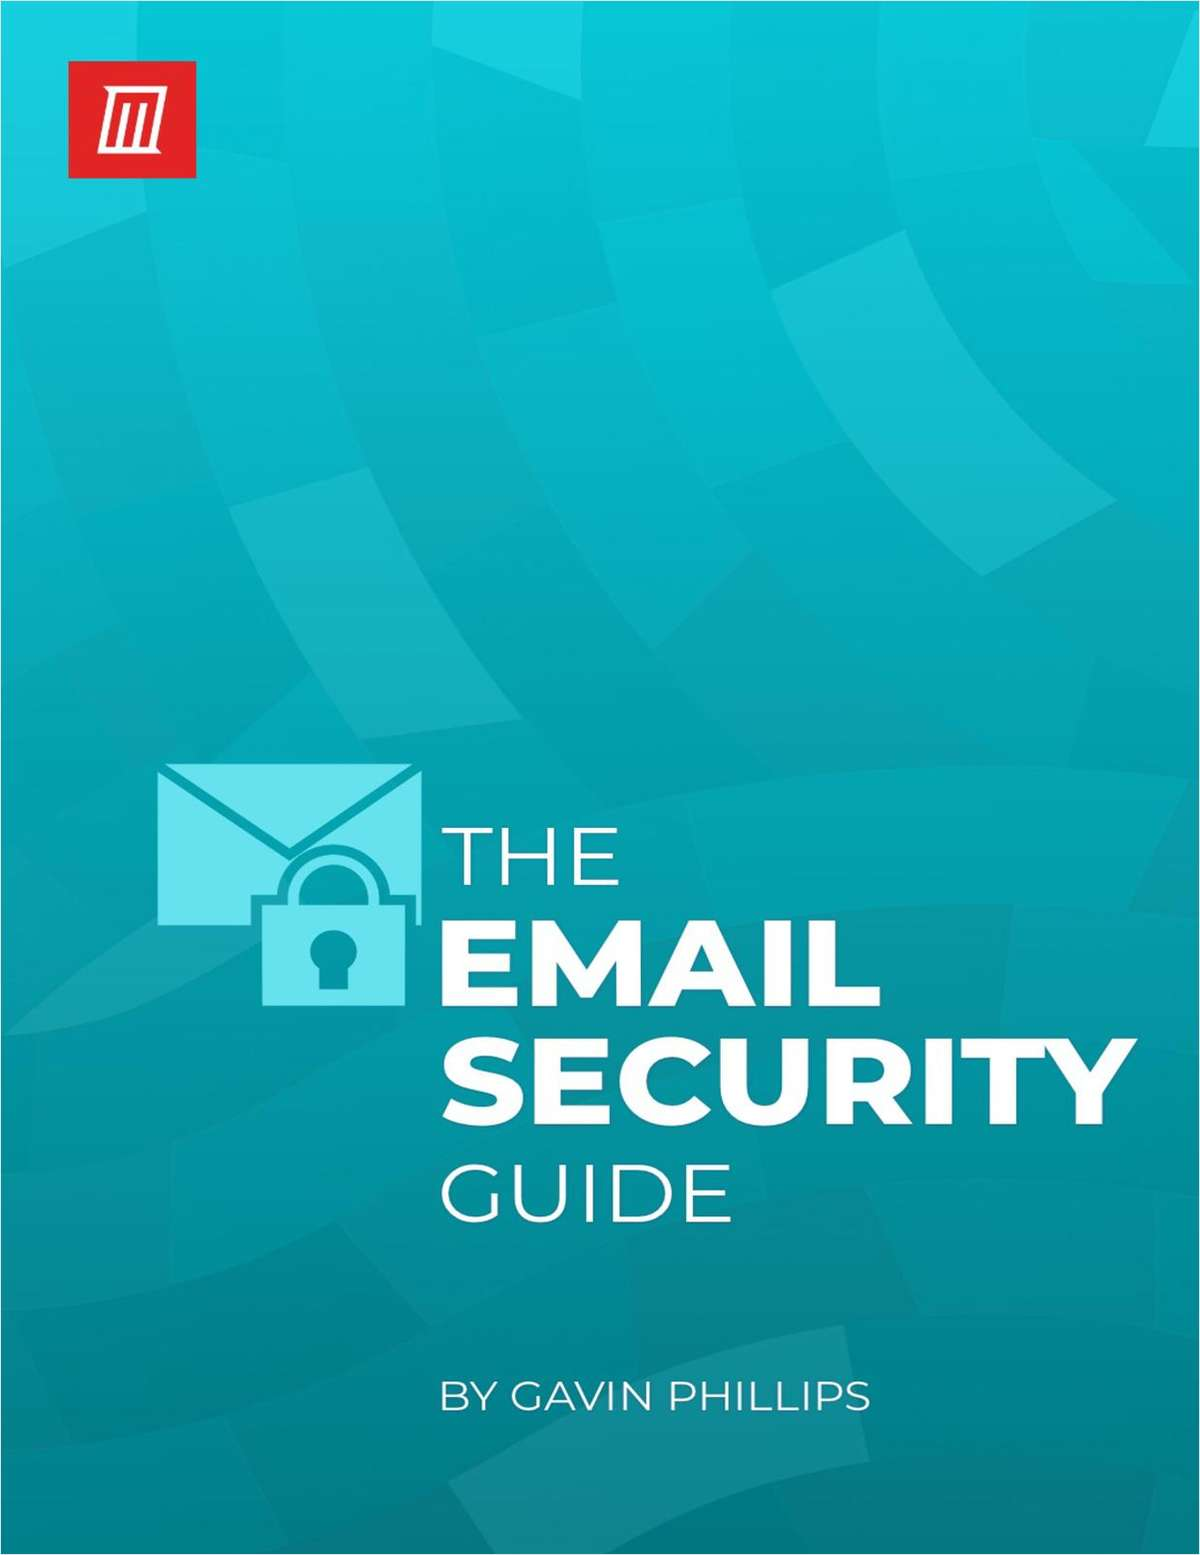 The Email Security Guide: Essential Tips to Protect Your Inbox